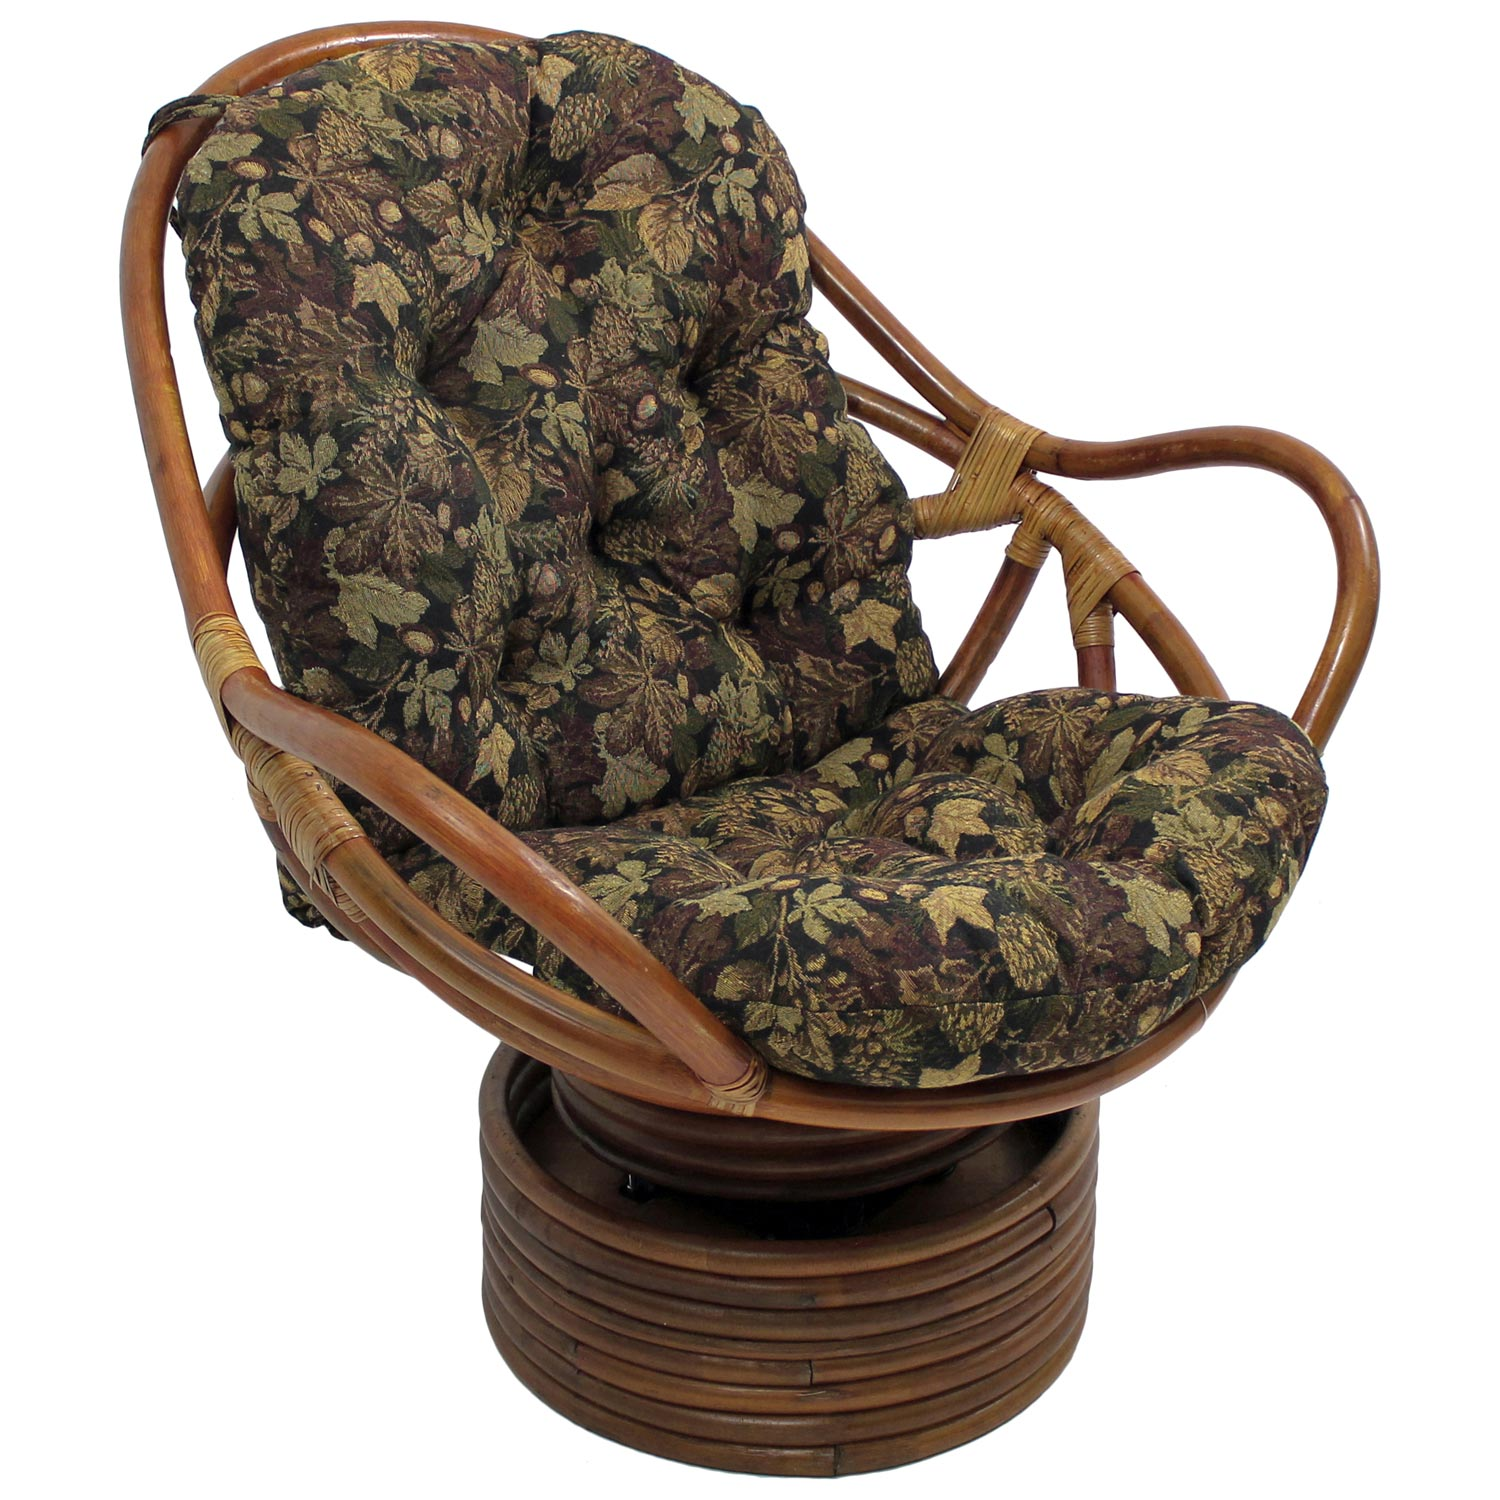 Bali Rattan Swivel Rocker Chair Tufted Tapestry Cushion